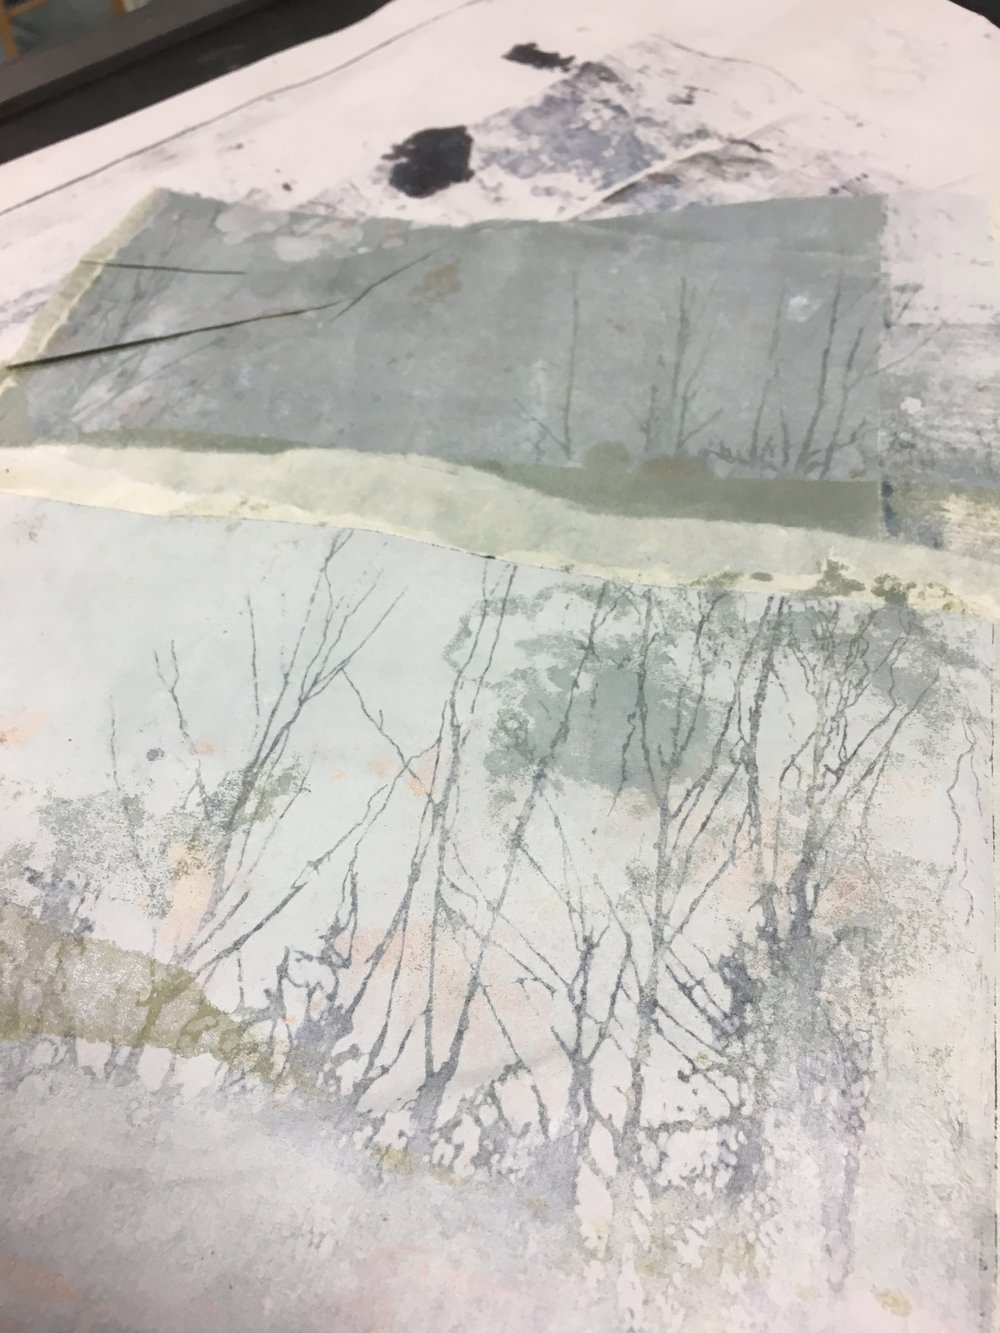 Work in progress, Digswell Print Studio, August 2018. Solar etching and mono print on Japanese tissue.